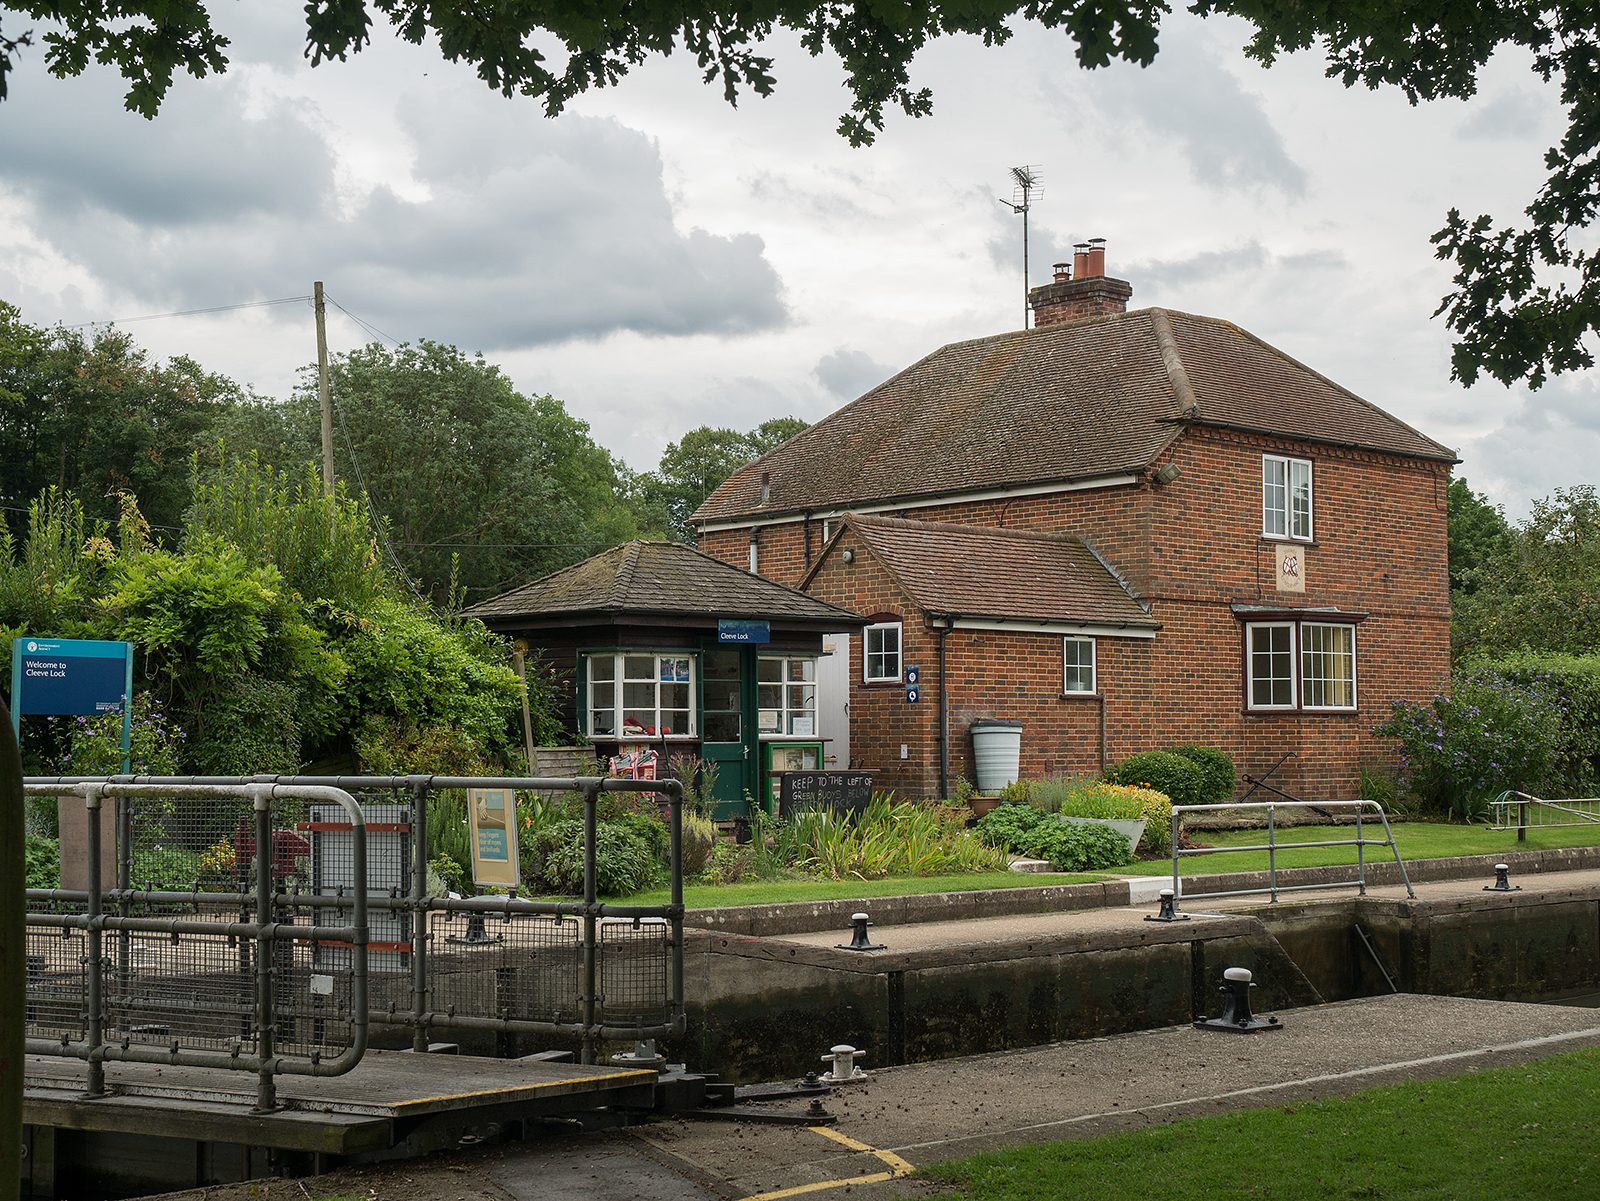 Cleve lock